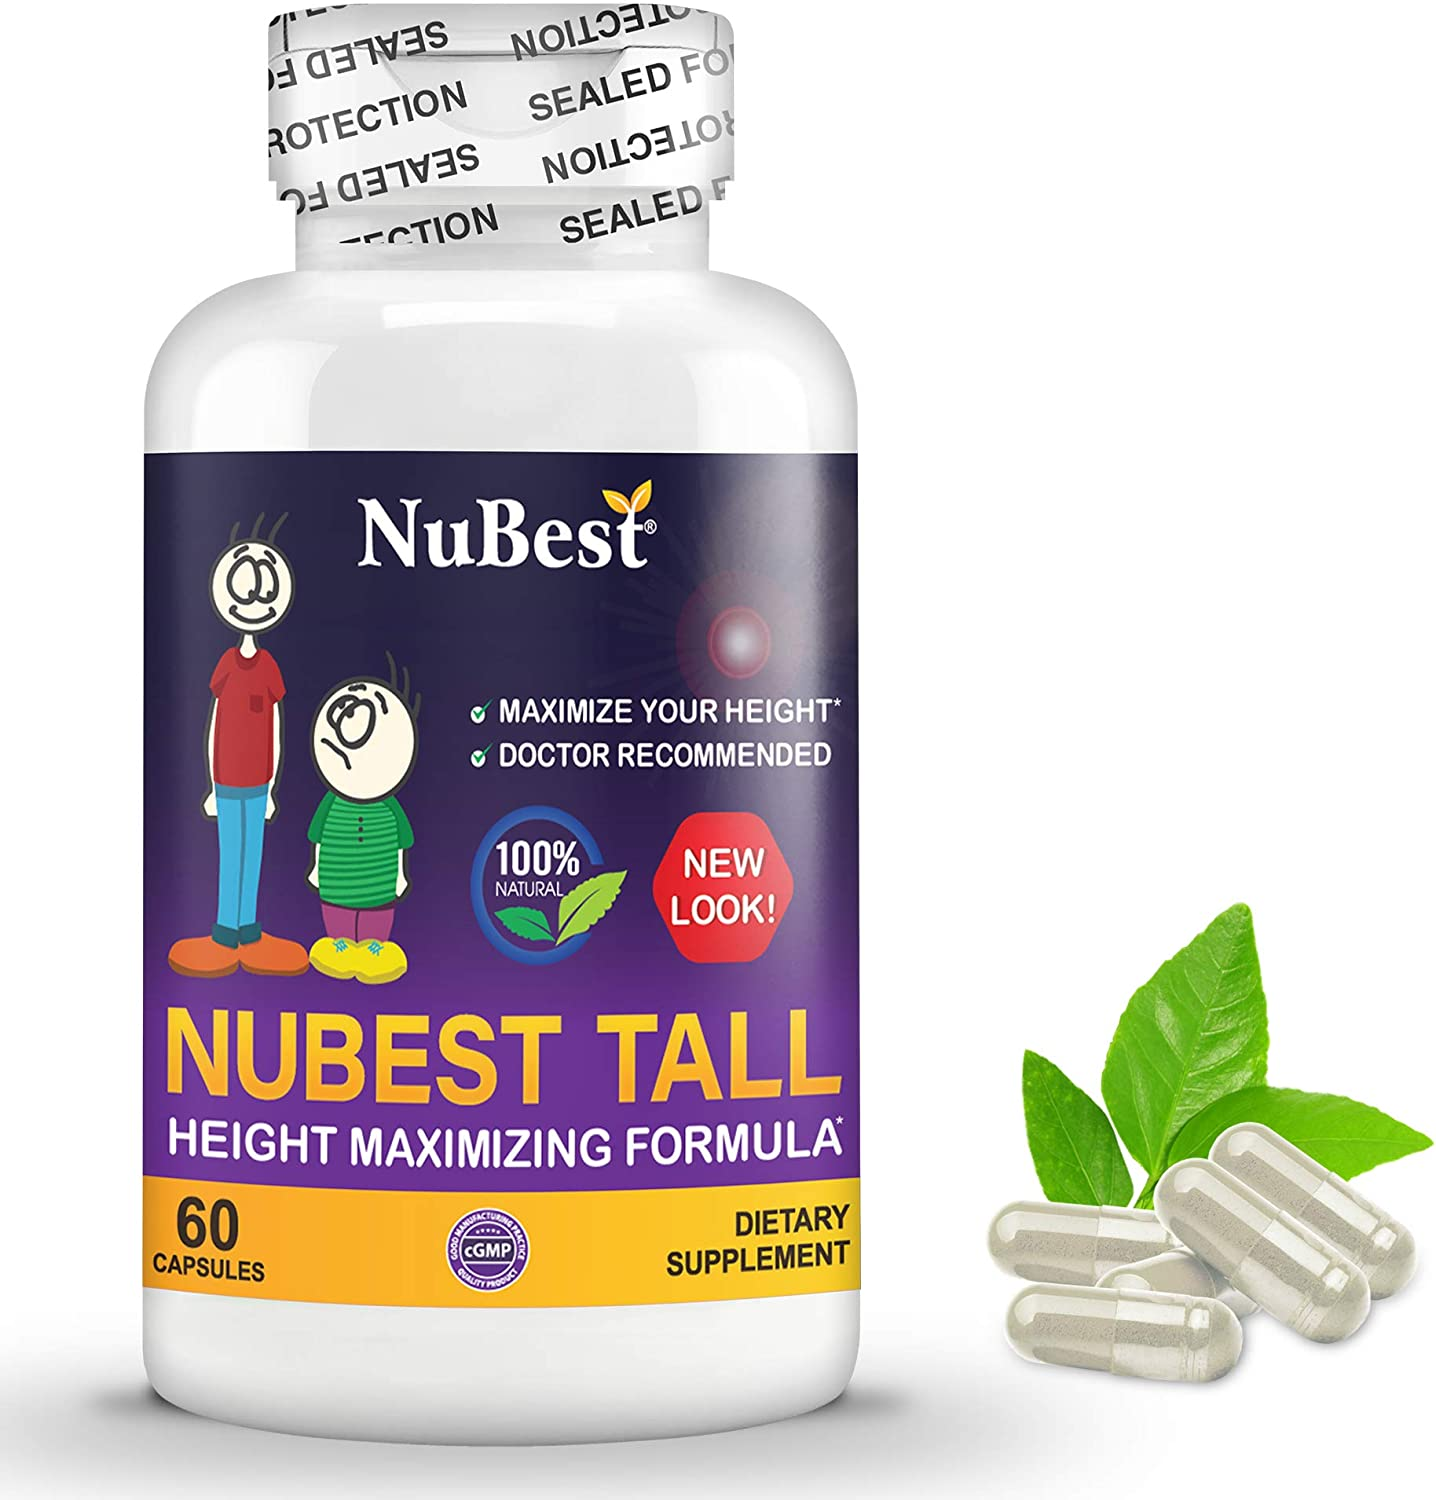 NuBest Tall 60 Capsules - Maximum Natural Height Growth Formula - Herbal Peak Height Pills - Grow Taller Supplement - Doctor Recommended - for People Who Don't Drink Milk Daily